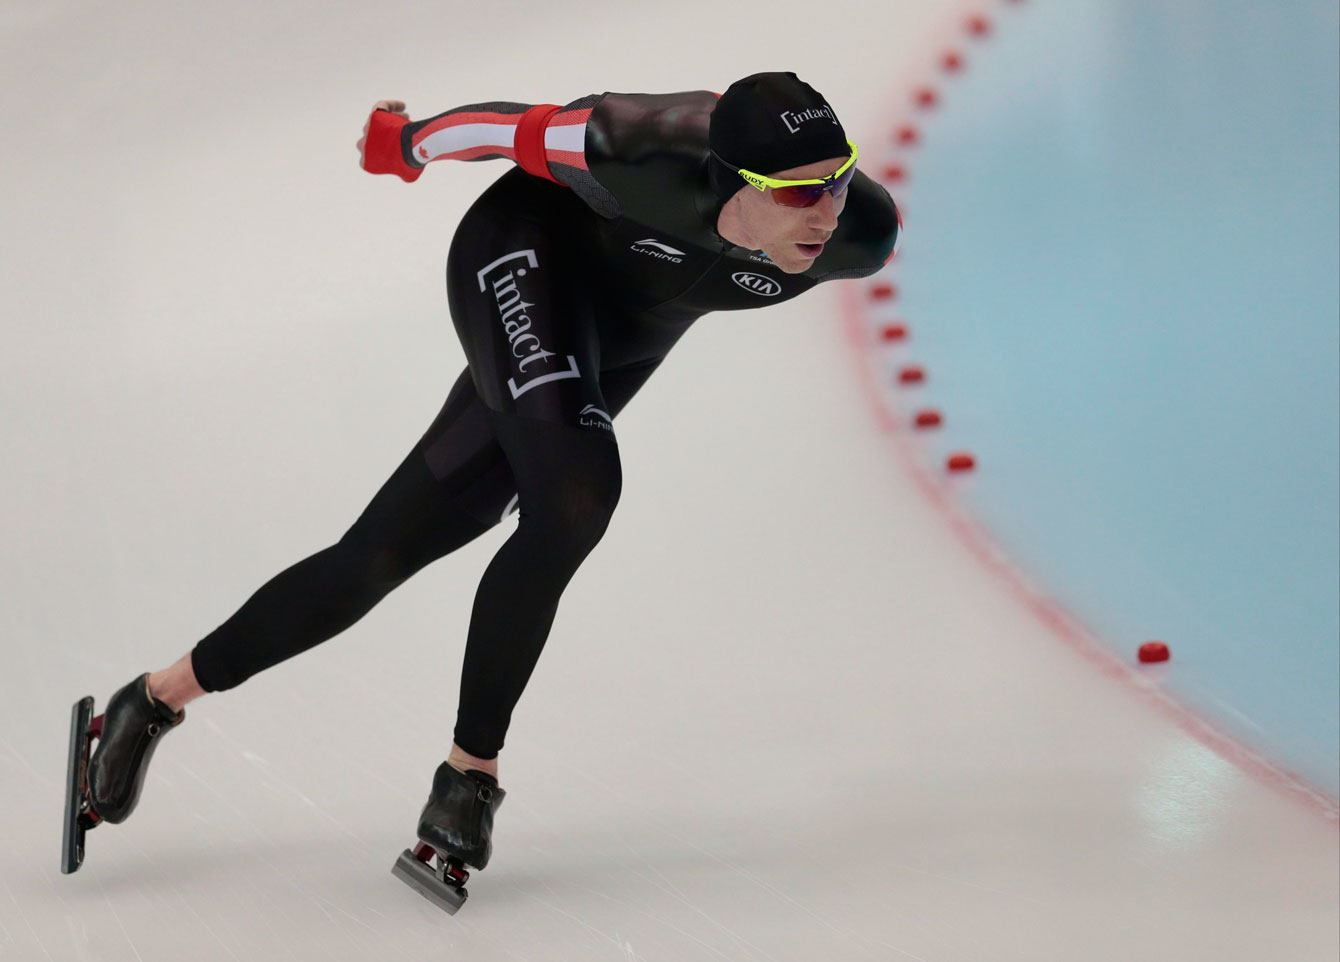 Ted-Jan Bloemen, of Canada, competes to take the silver at the men's 10,000 metres of the World Single Distances Speed Skating Championships in Kolomna, Russia, on Thursday, Feb. 11, 2016. (AP Photo/Ivan Sekretarev)